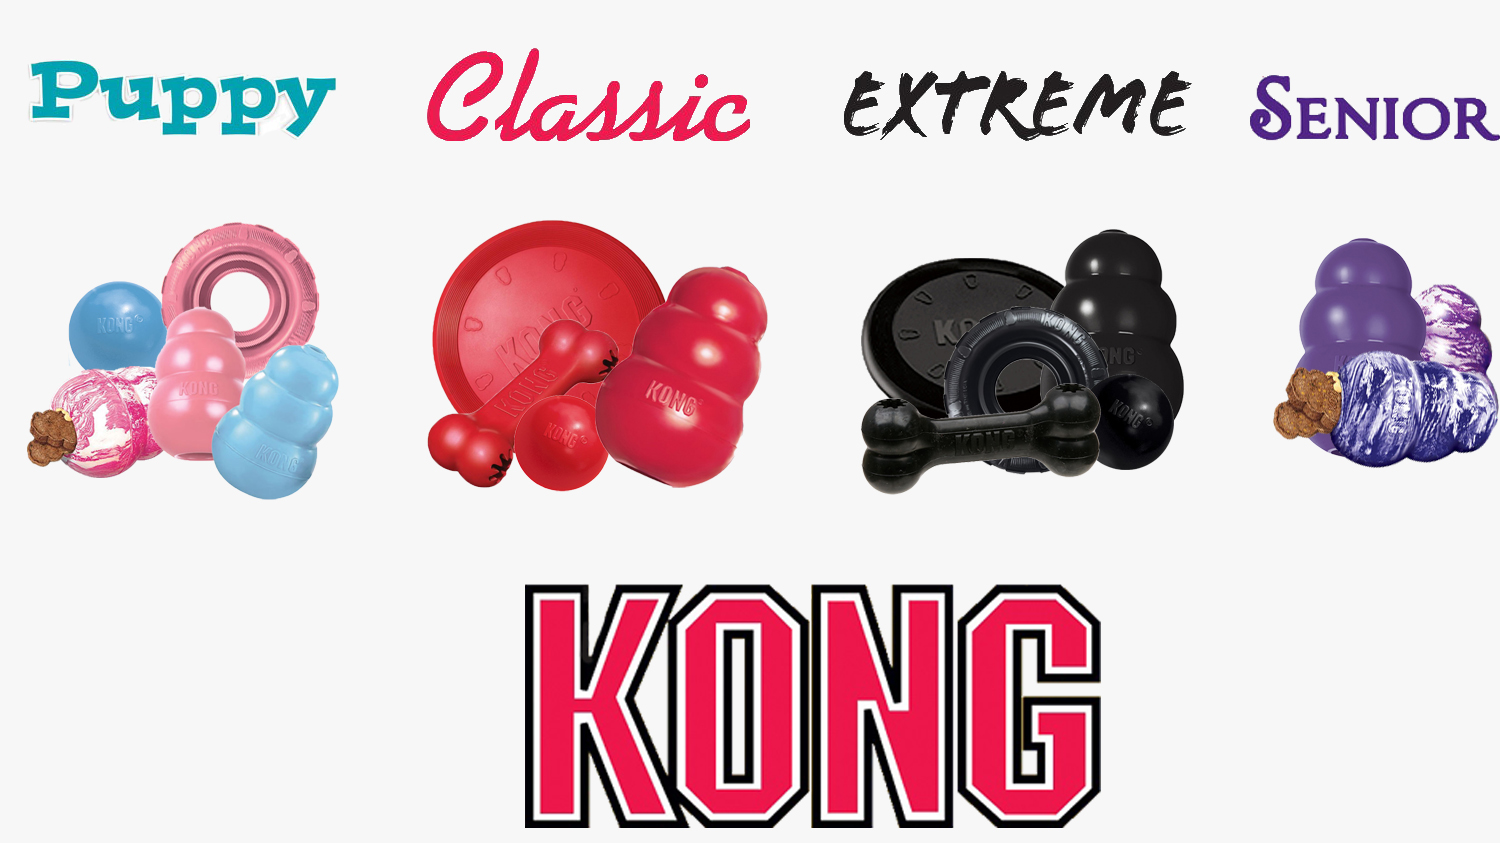 Kong puppy classic extreme senior